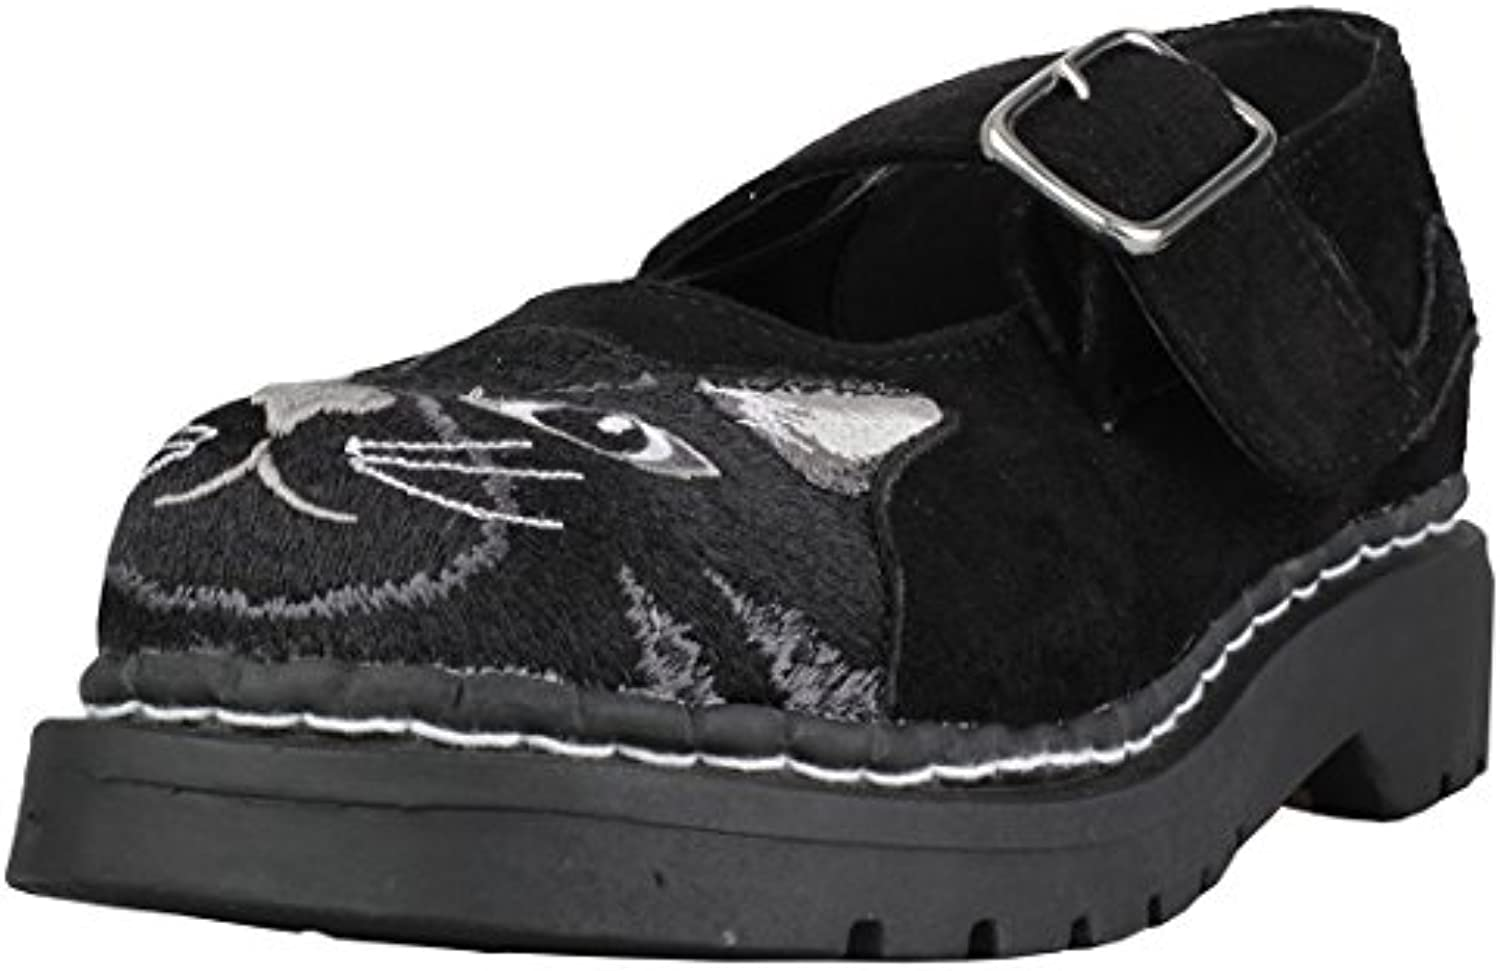 Mary Parent k u Kitty Broderies Wo T Chaussures Jane fvbyYg7I6